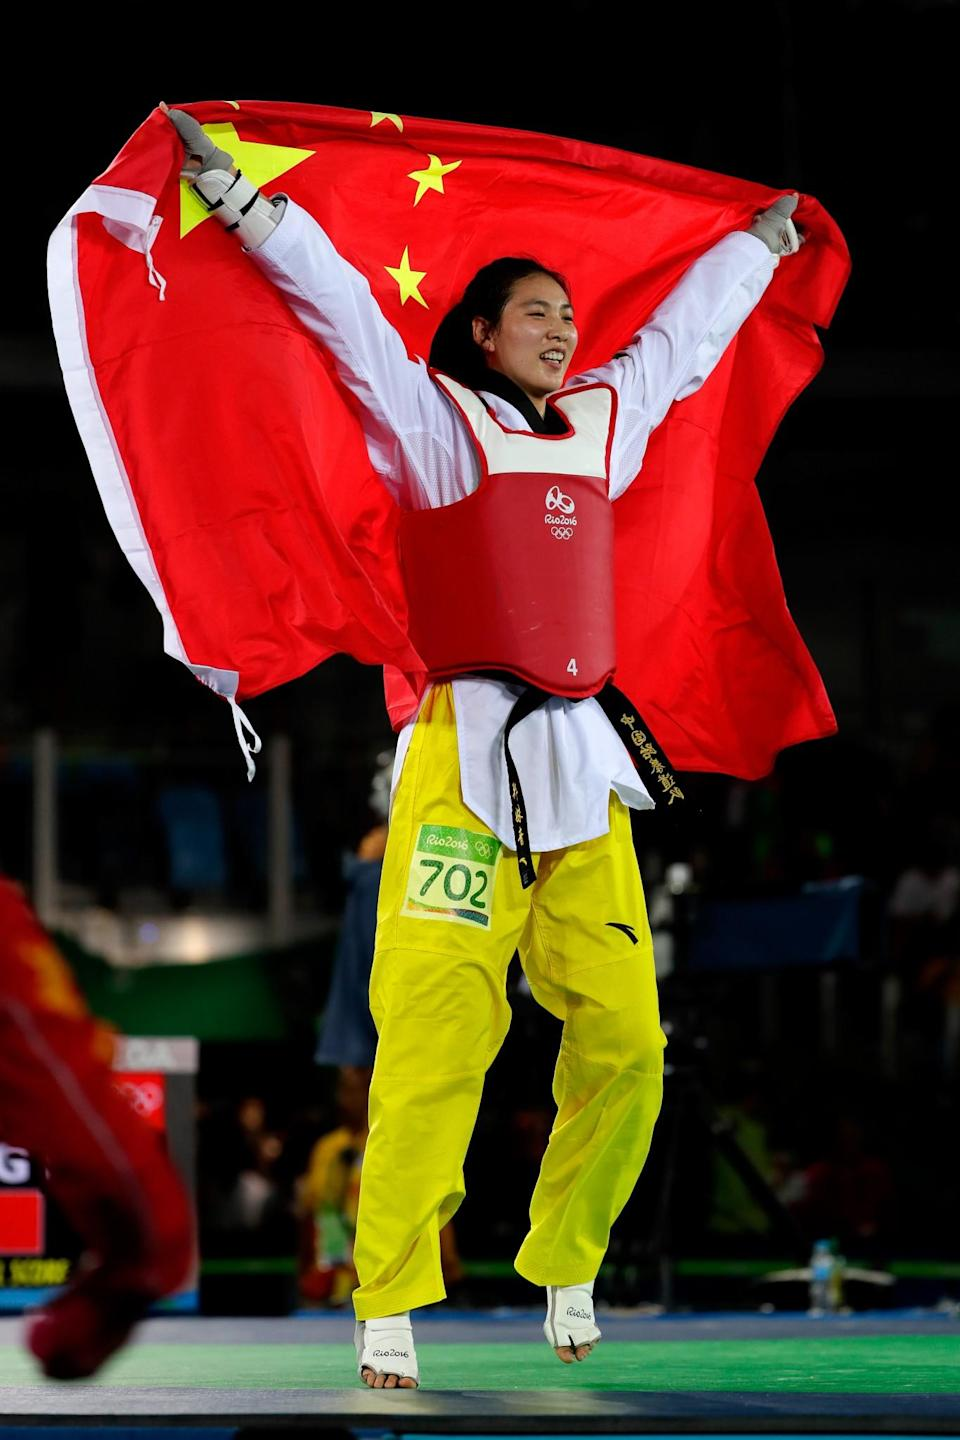 <p>Shuyin Zheng of China celebrates beating Maria del Rosario Espinoza Espinoza of Mexico during the Taekwondo Women +67kg Gold Medal Contest on Day 15 of the Rio 2016 Olympic Games at Carioca Arena 3 on August 20, 2016 in Rio de Janeiro, Brazil. (Photo by Jamie Squire/Getty Images) </p>